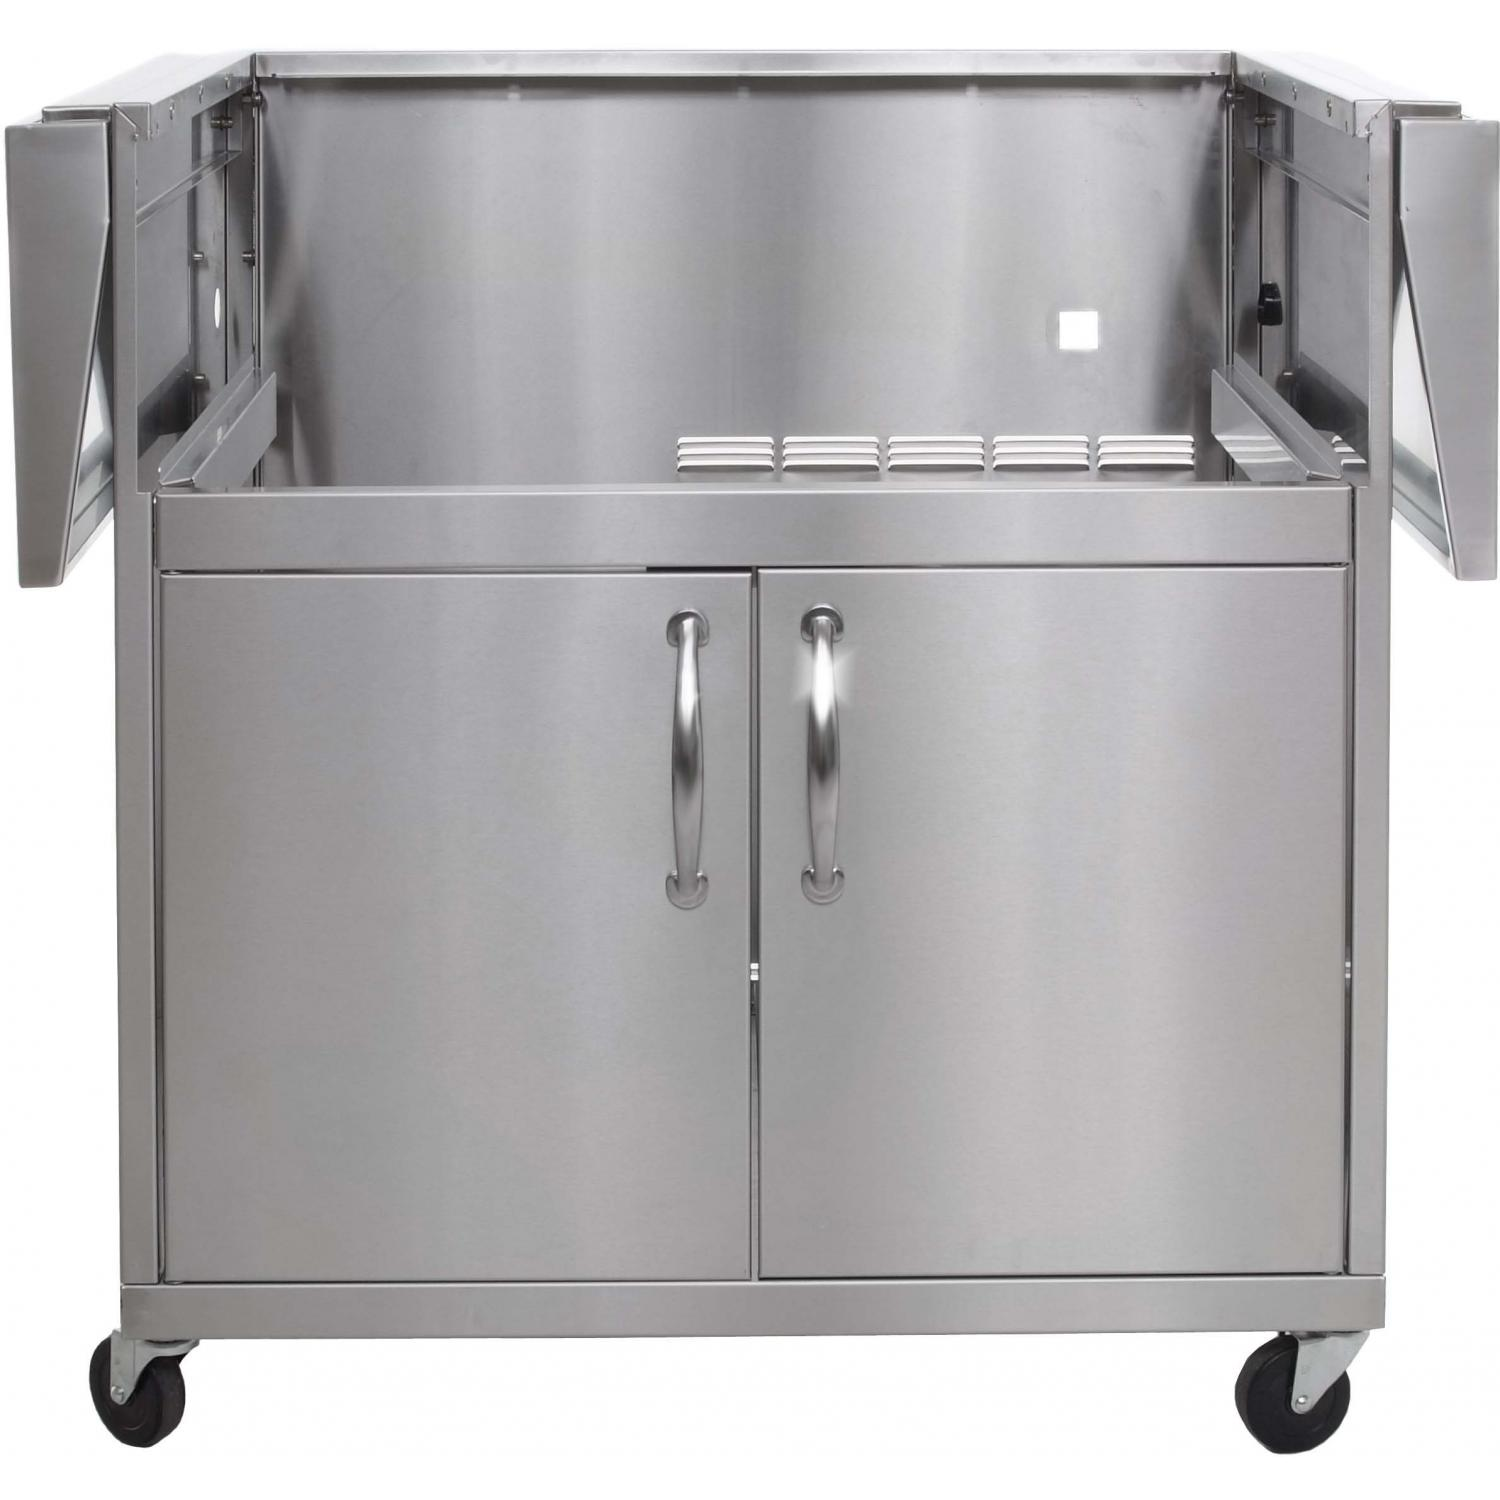 Artisan Stainless Steel Cart For 26 Inch Artisan Gas Grill